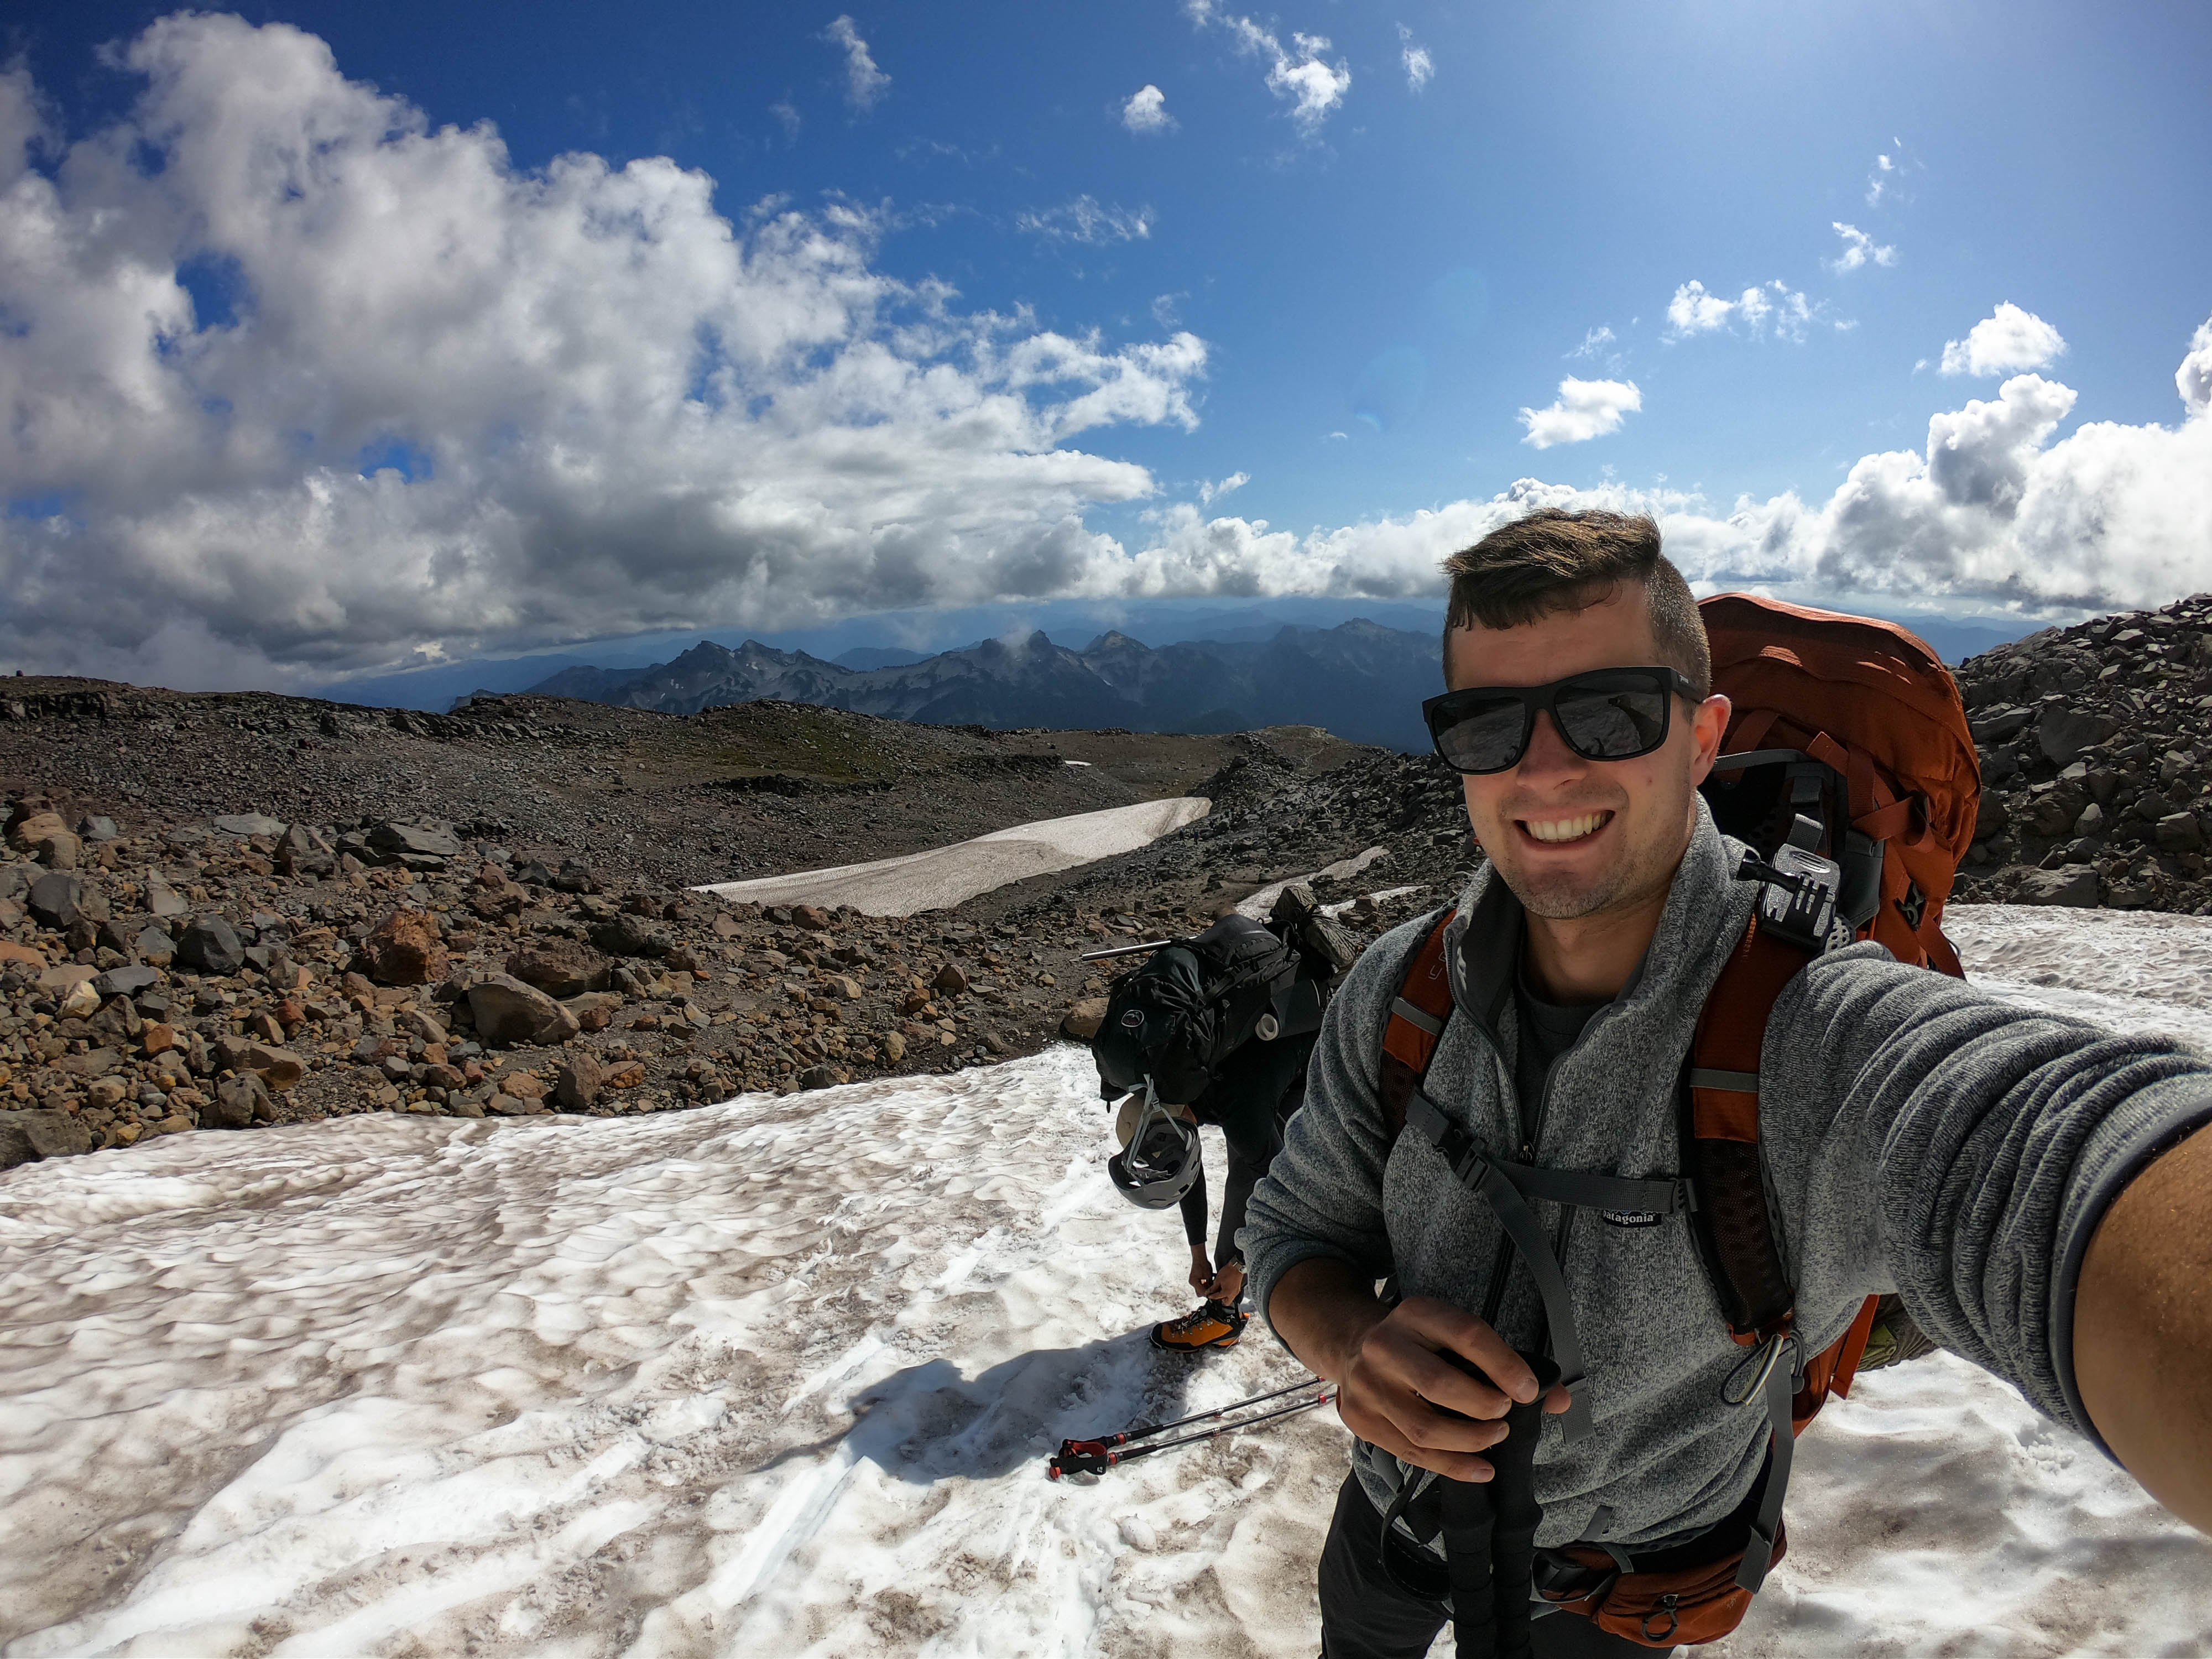 A guide to backcountry hiking. On Mt. Rainier, starting to climb up the Muir Snowfield. The weather changes quickly, as it was sunny on the bottom but completely clouded in half way to Camp Muir.